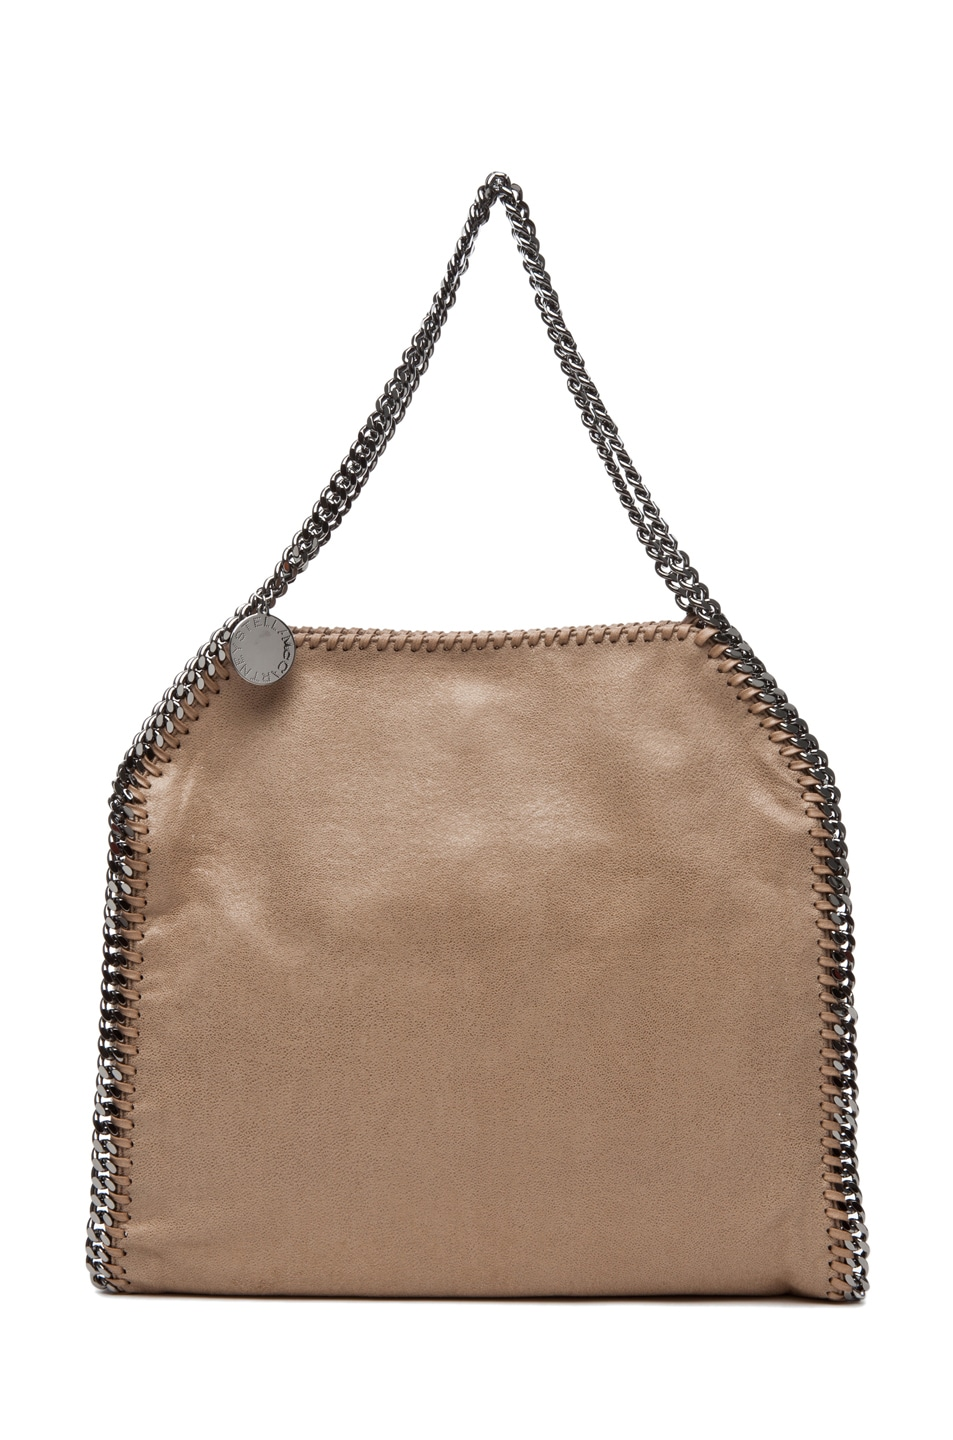 Image 1 of Stella McCartney Shaggy Deer Small Tote in Toffee